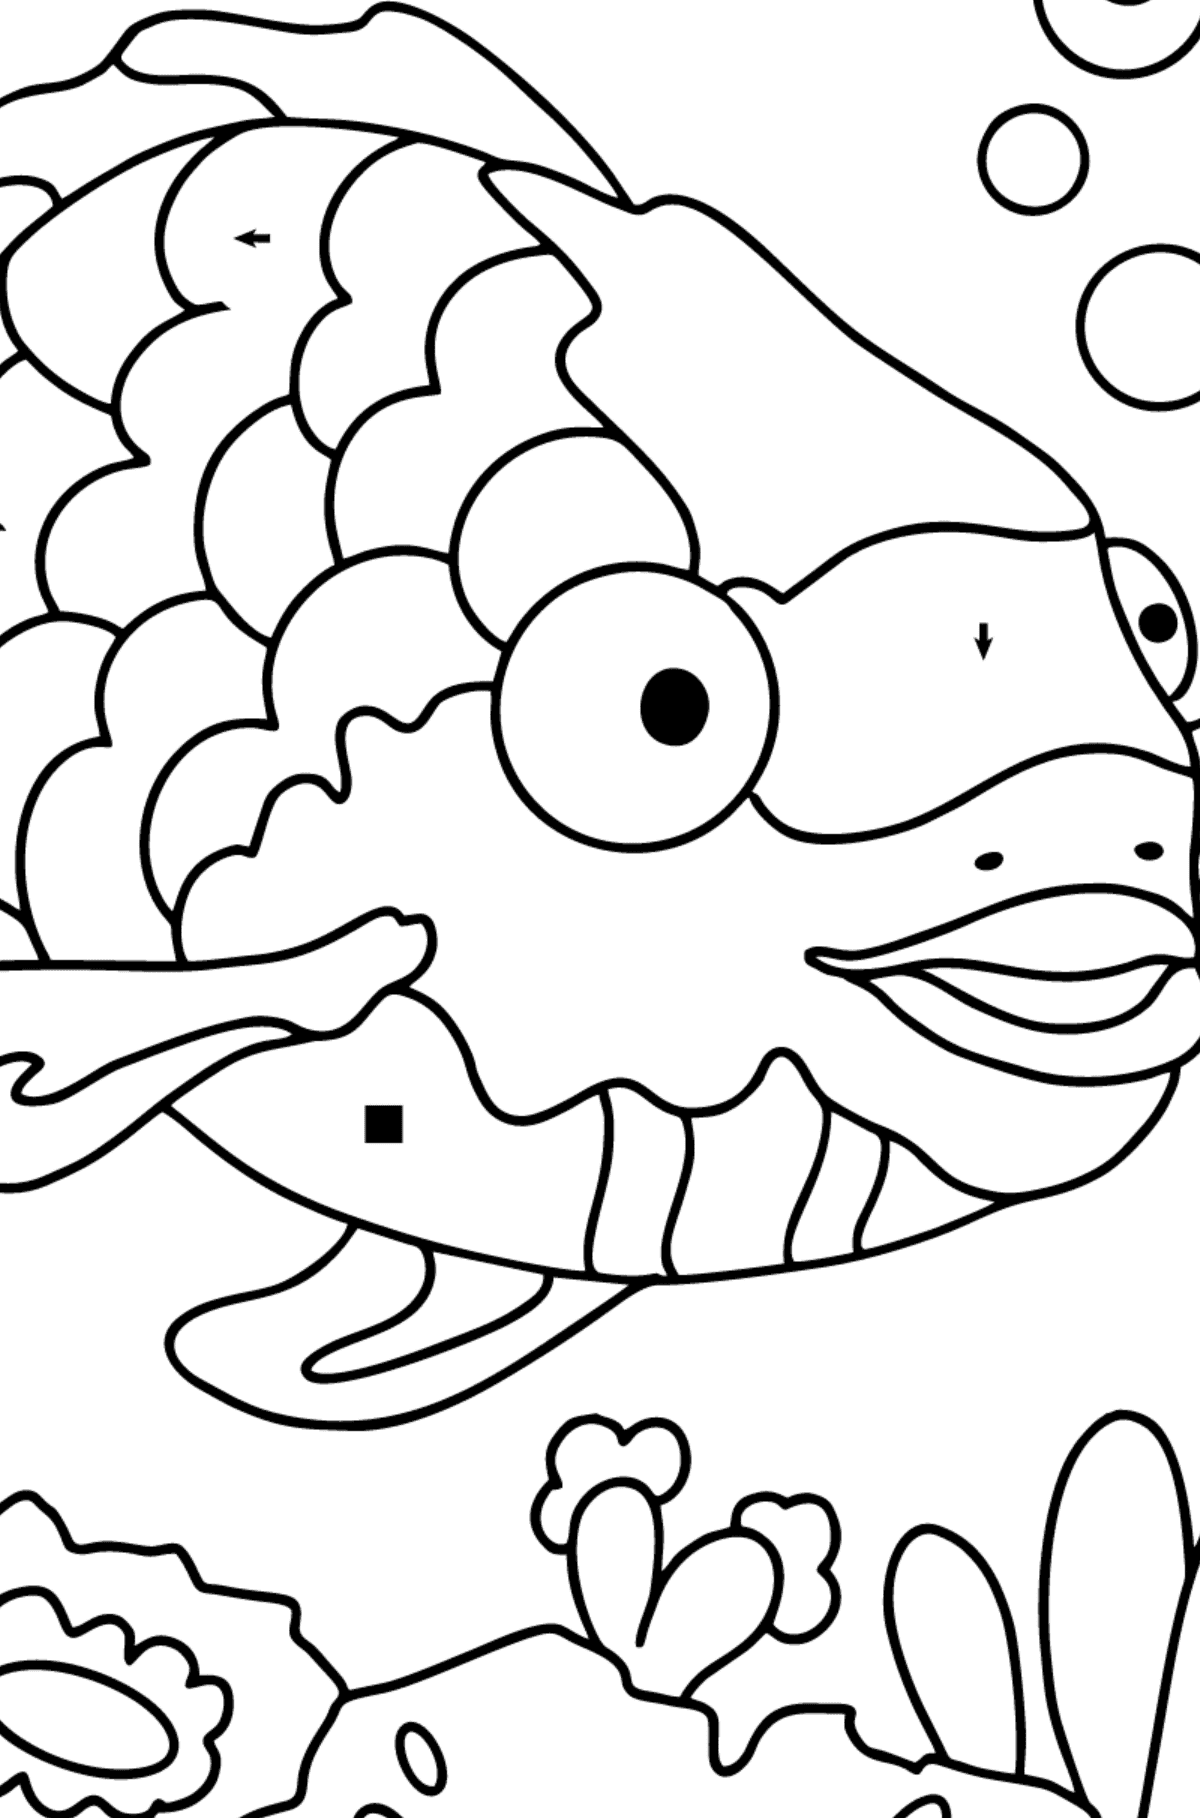 Coloring Page - A Fish with Multicolored Scales - Coloring by Symbols and Geometric Shapes for Children